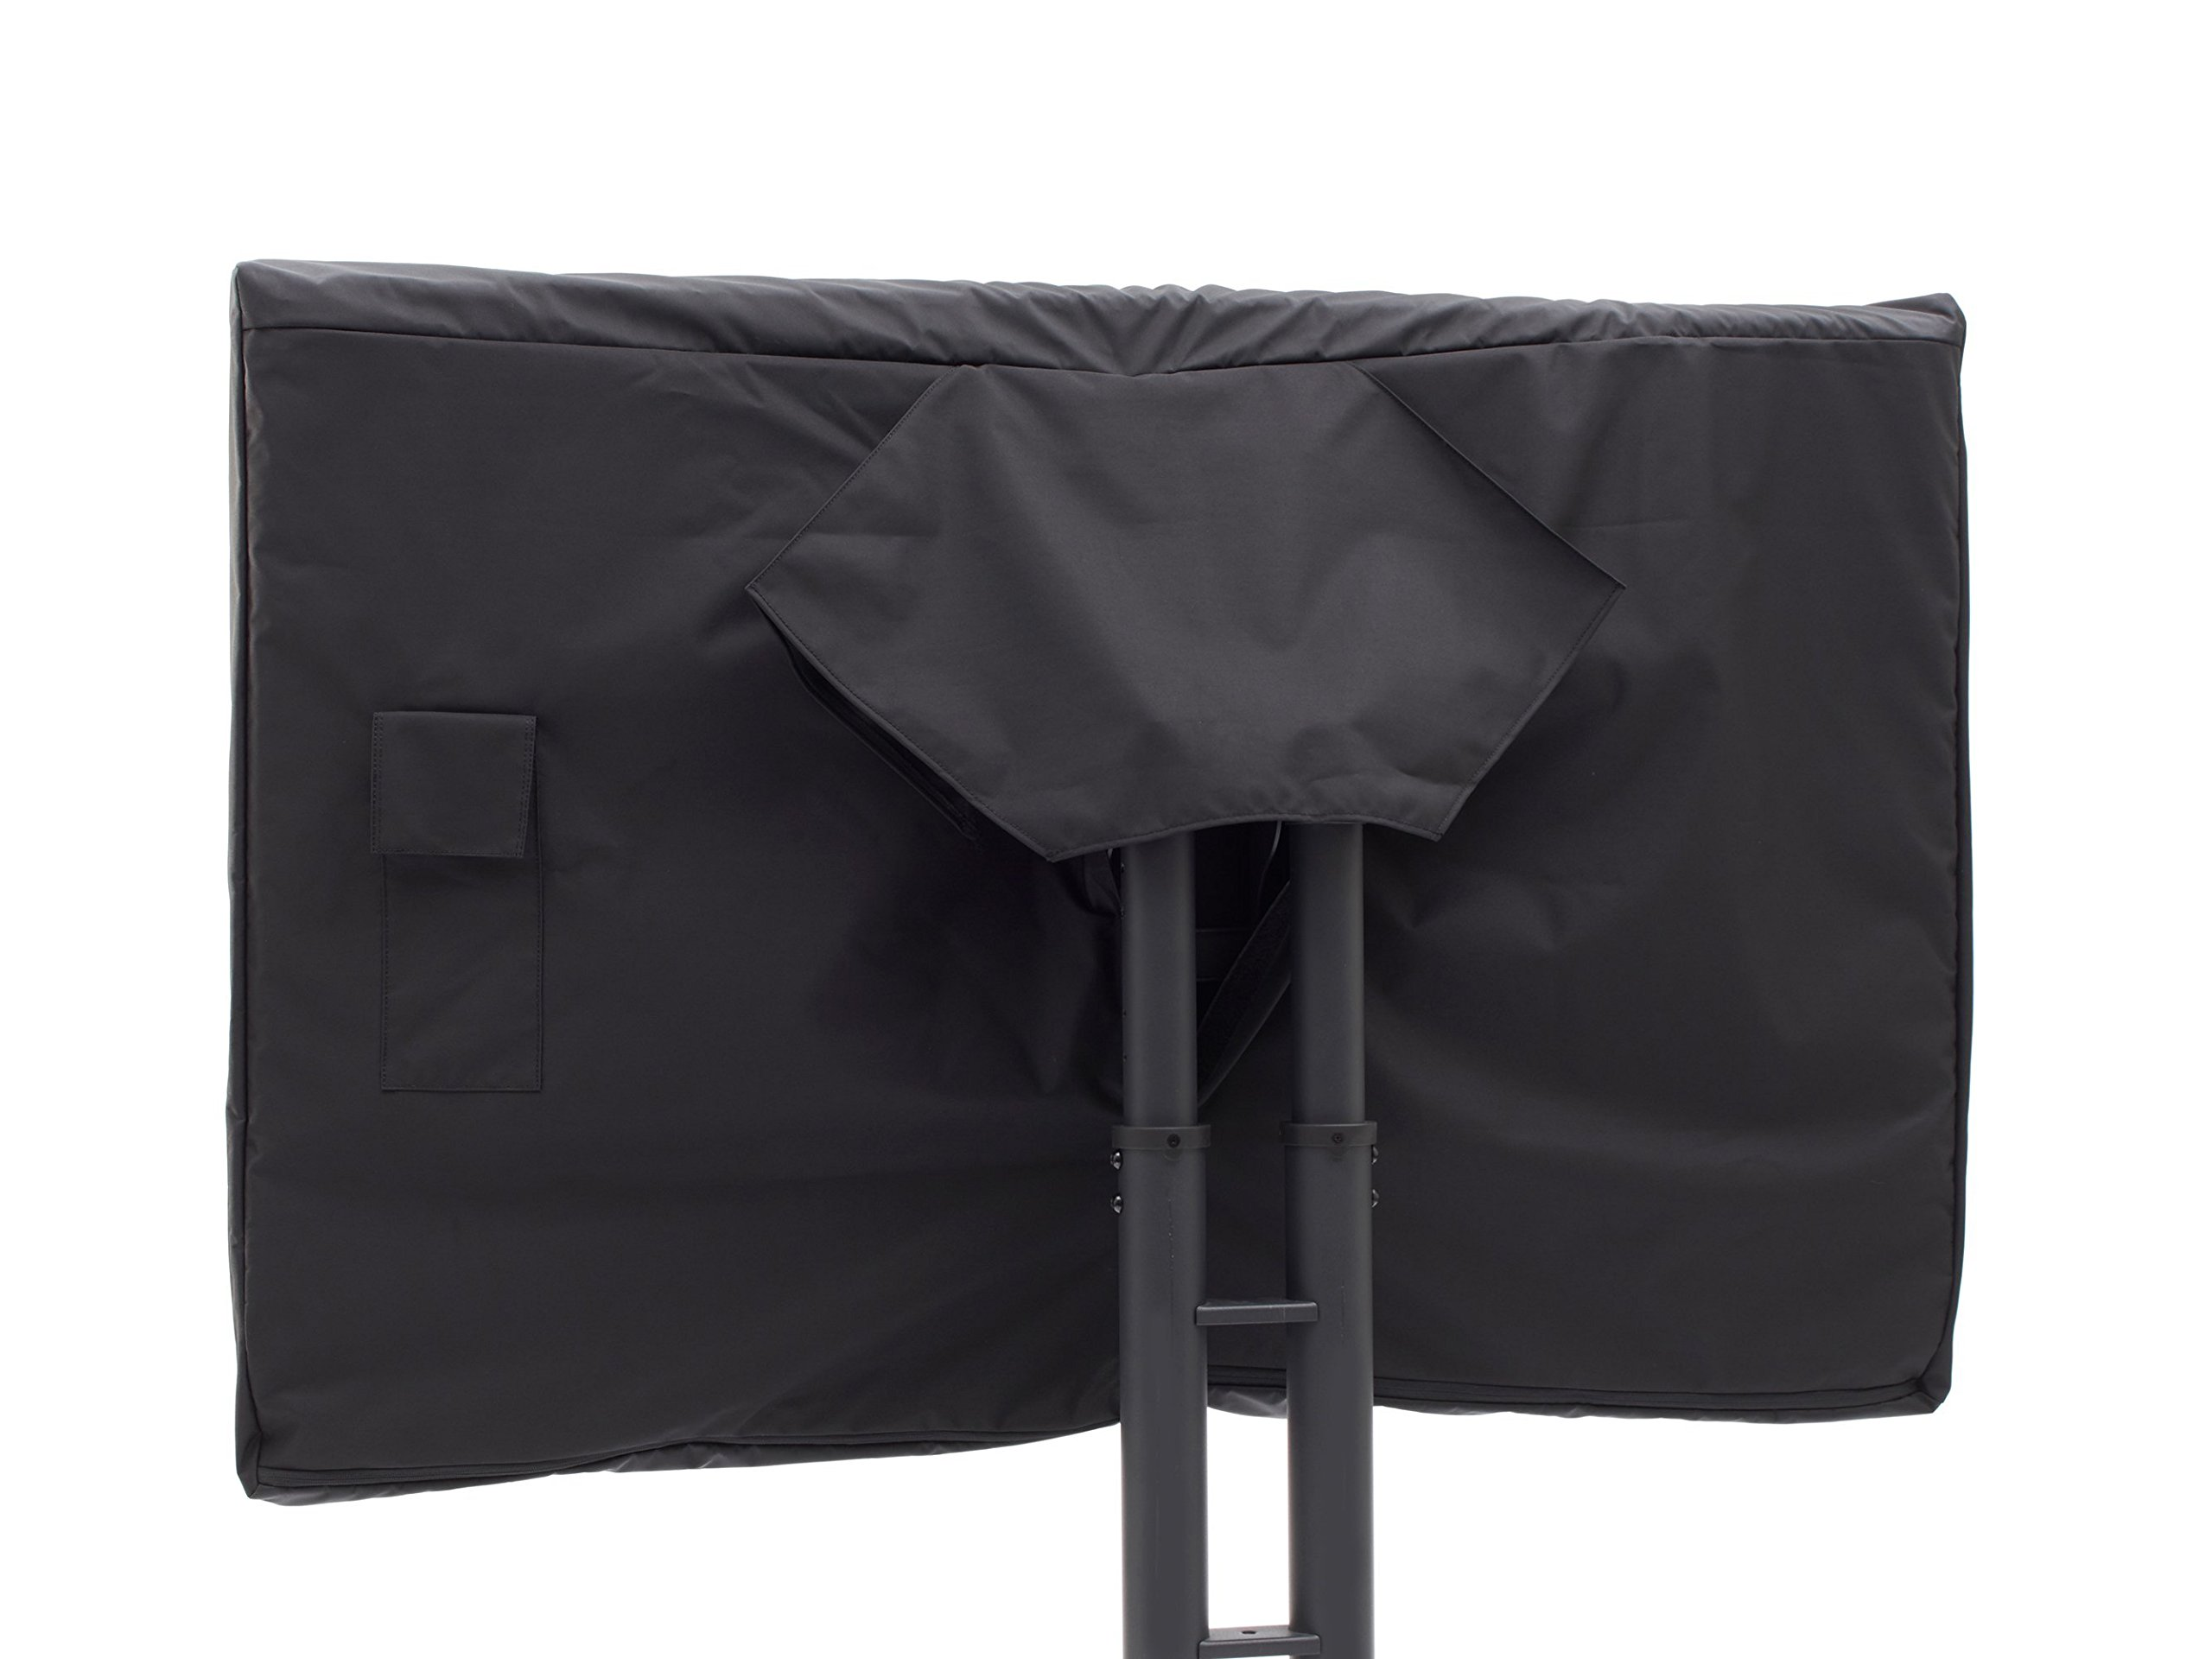 Covermates - Outdoor TV Cover - Fits 65 to 68 Inch TV's - Elite - 300 Denier Stock-Dyed Polyester - Full Coverage - Front Interior Fleece Lining - 3 Year Warranty - Water Resistant- Black